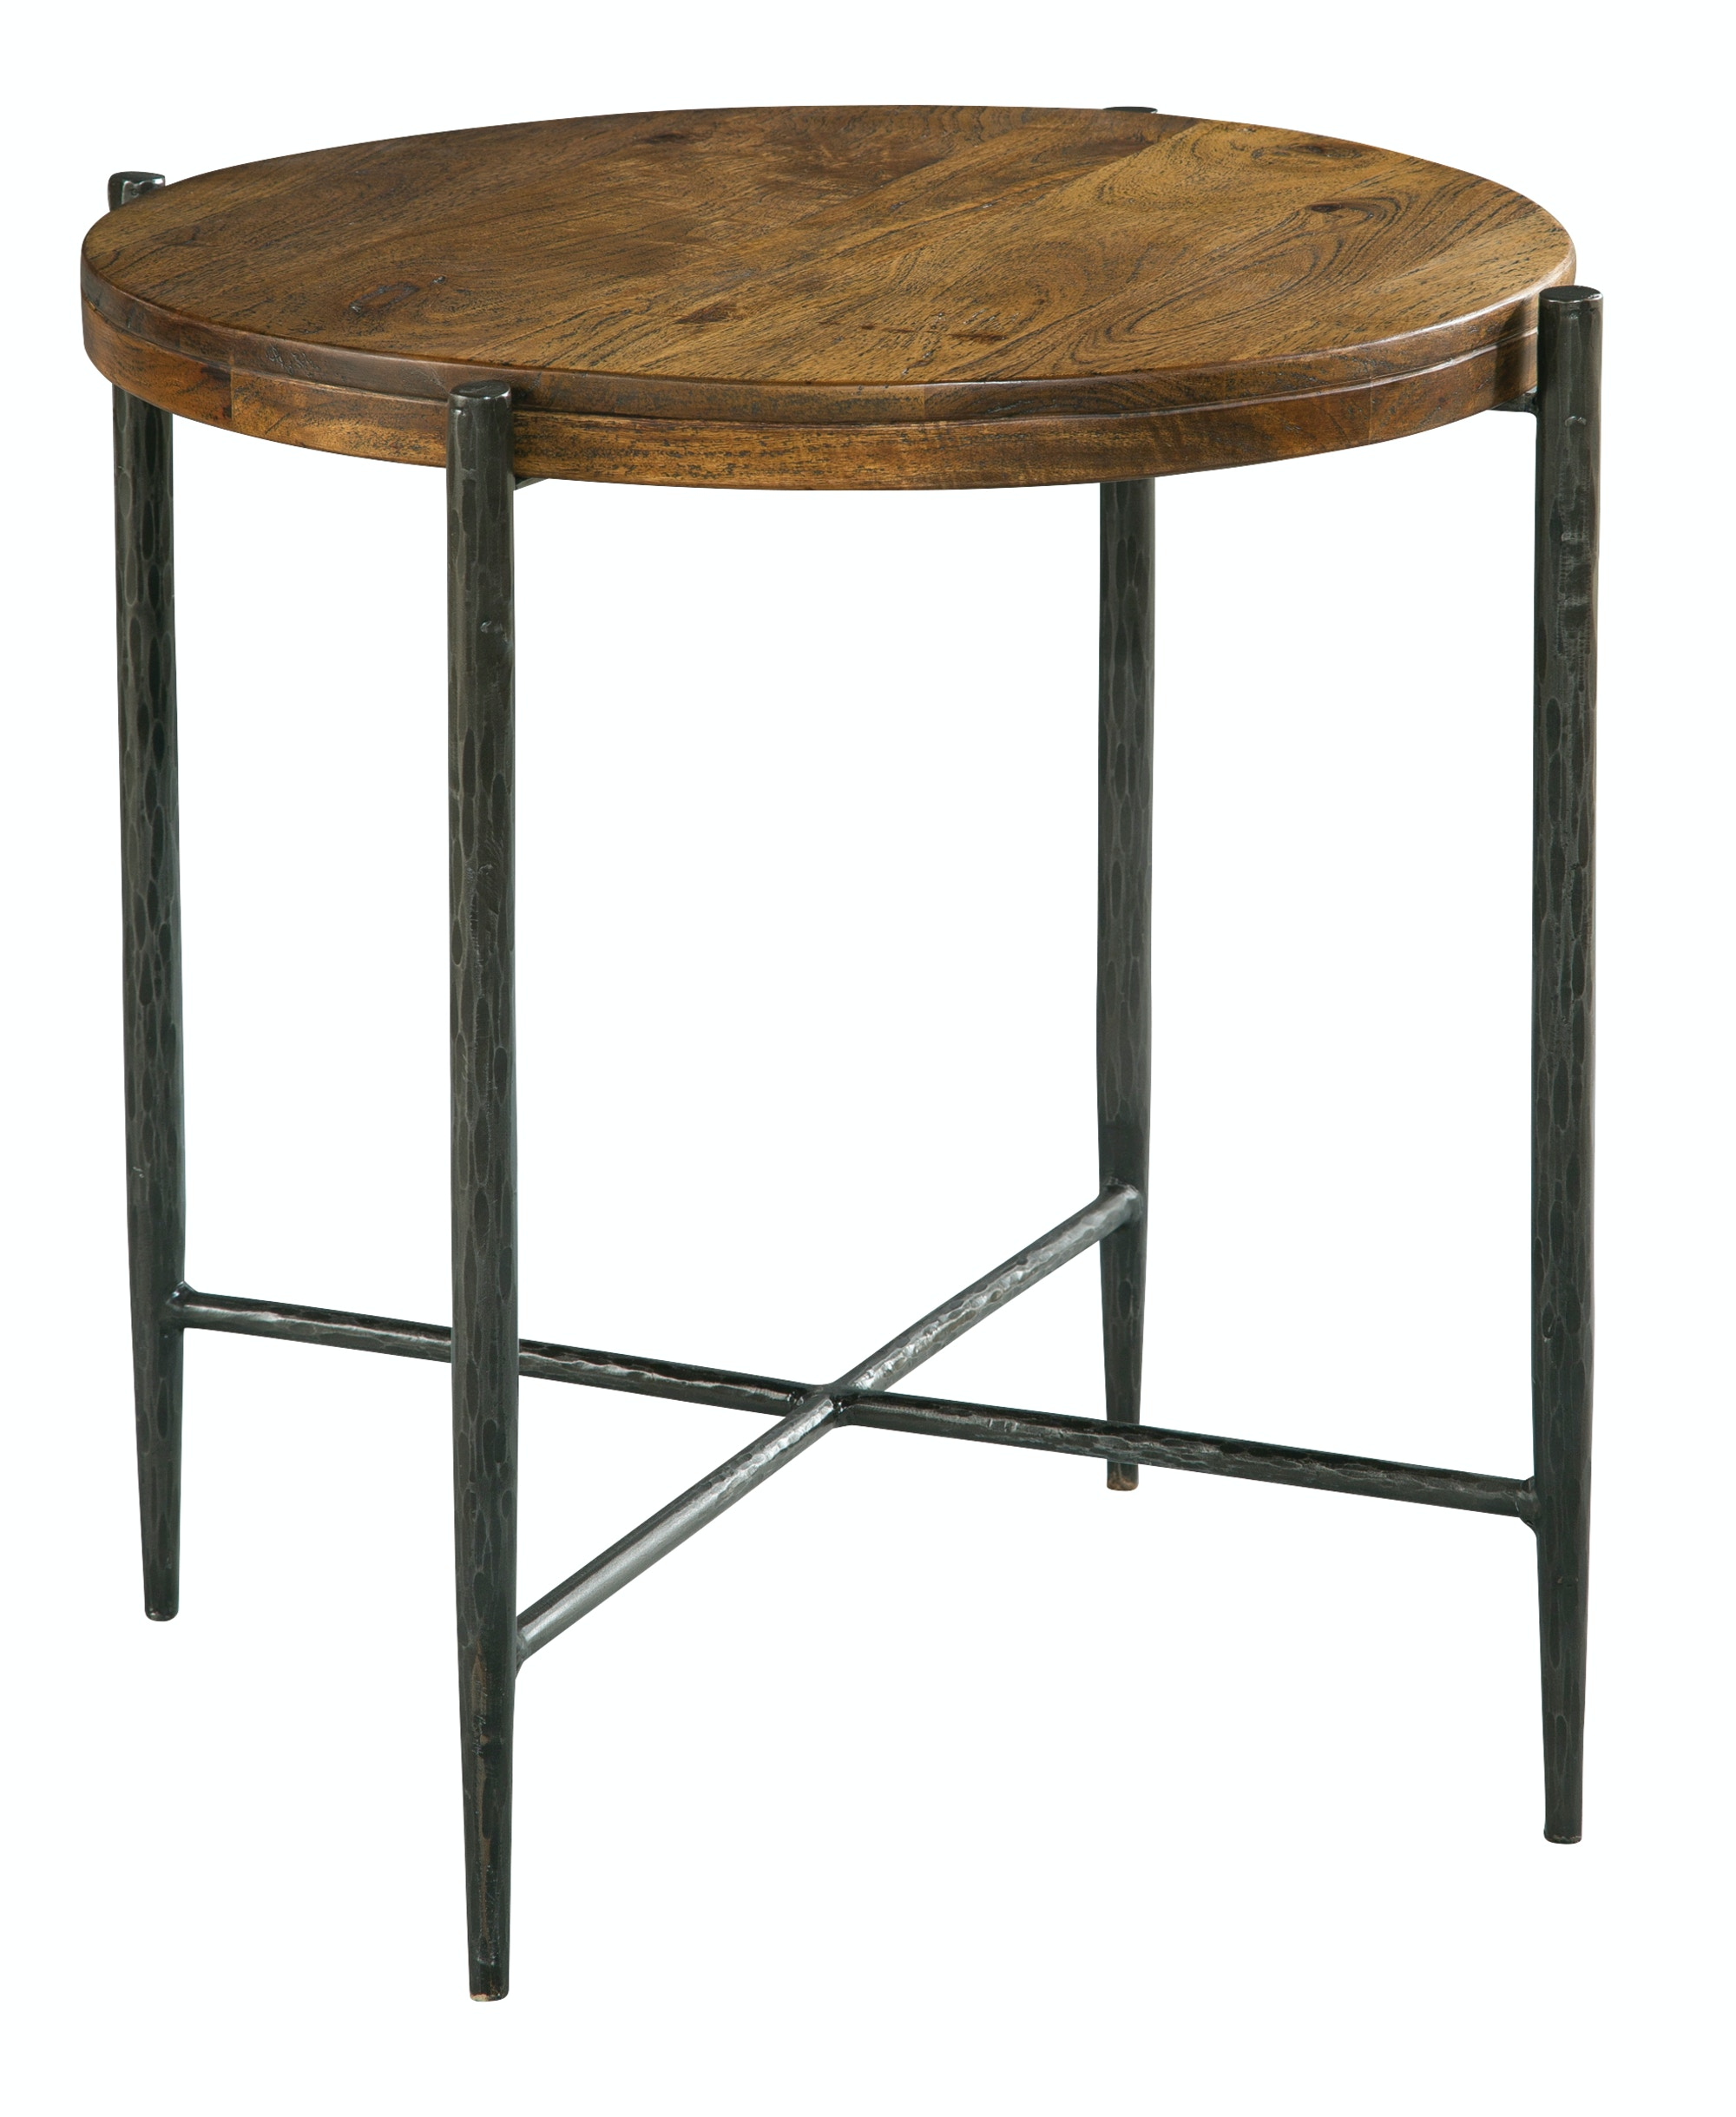 Hekman Furniture Hekman Accents Metal U0026 Wood End Table 23714 Hekman